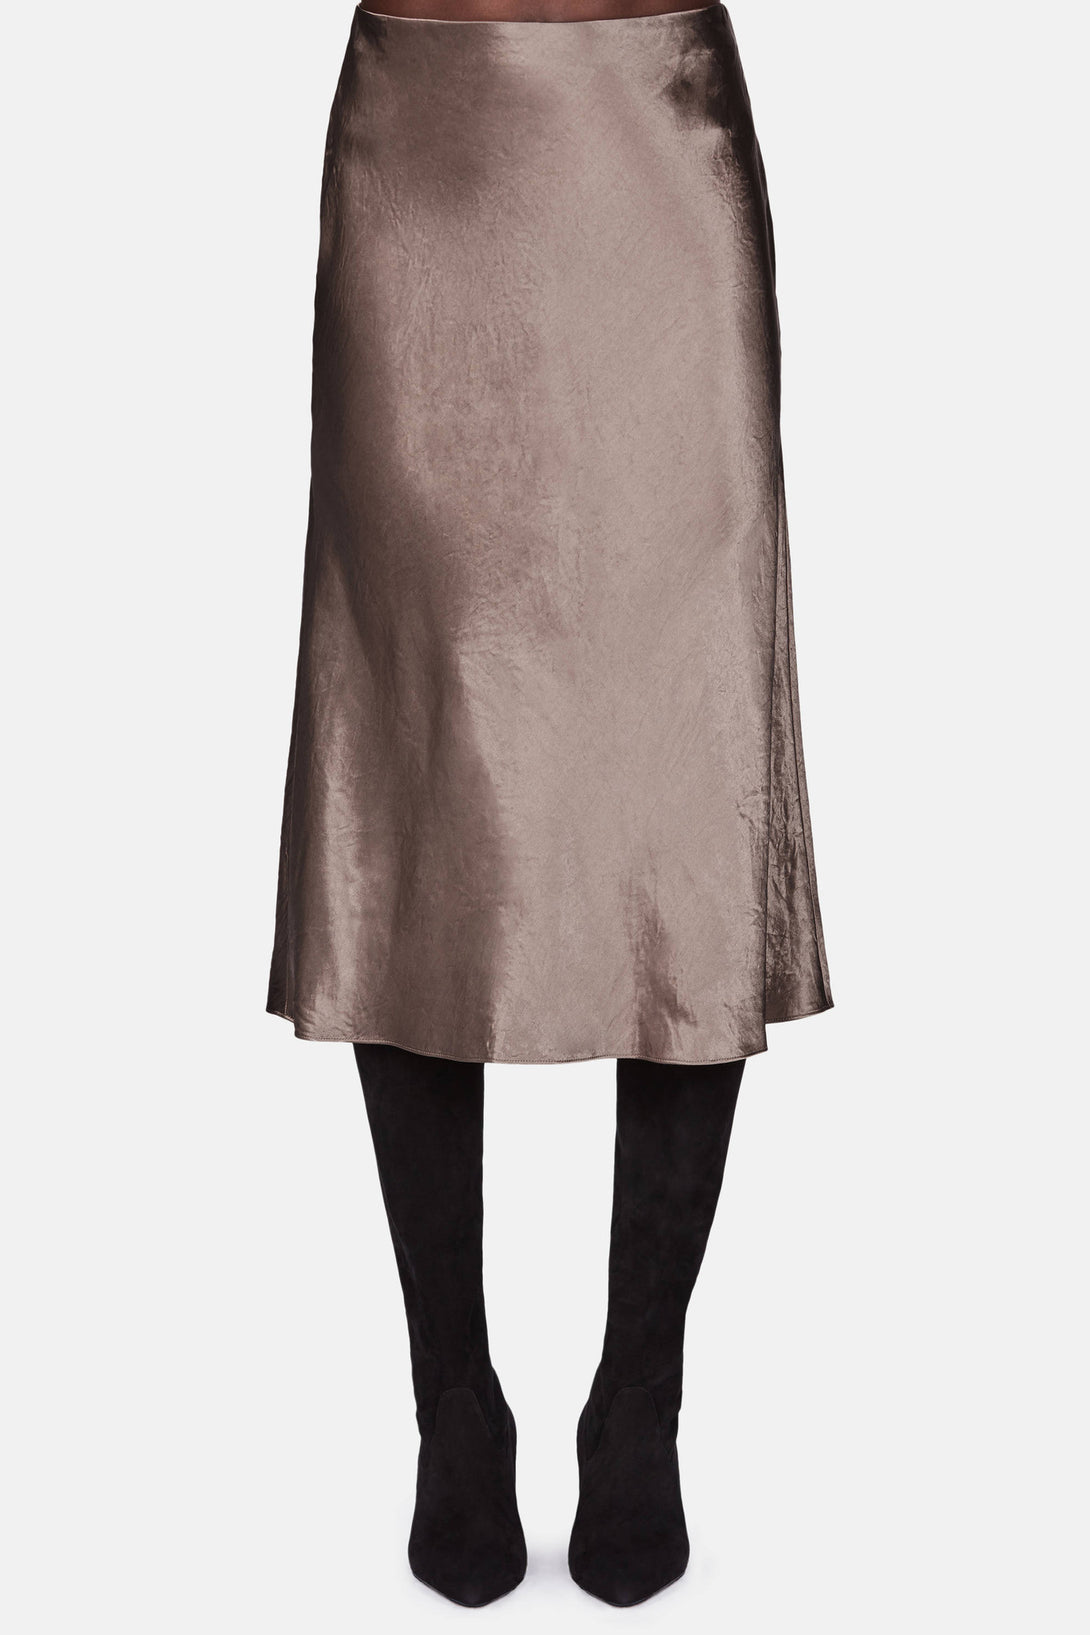 Flare Skirt - Coffee – The Line